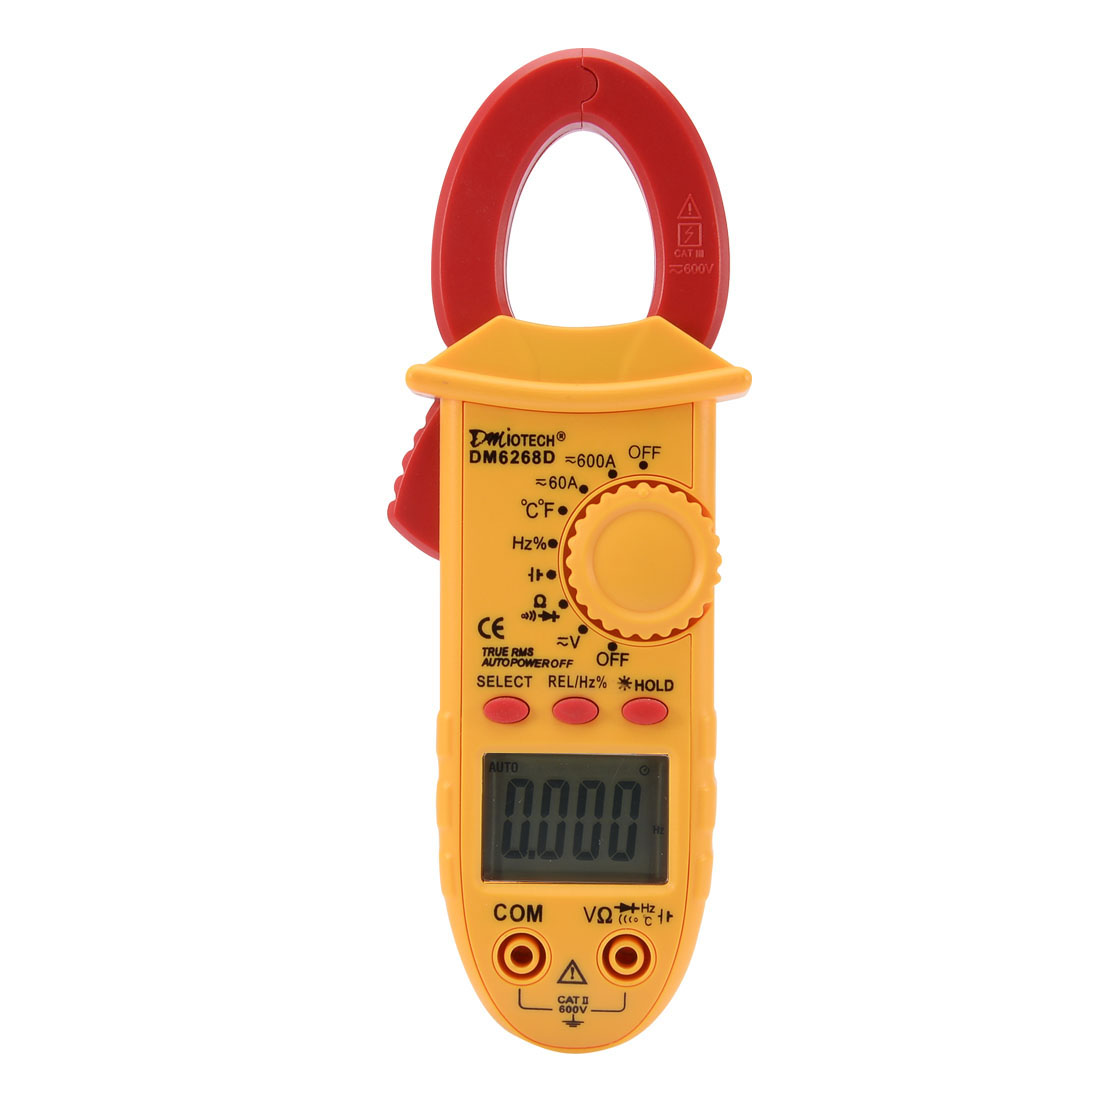 DM6268D Mini Digital Multimeter Ammeter Voltage ACV DCV Ohm Clamp Meter Tester Handheld